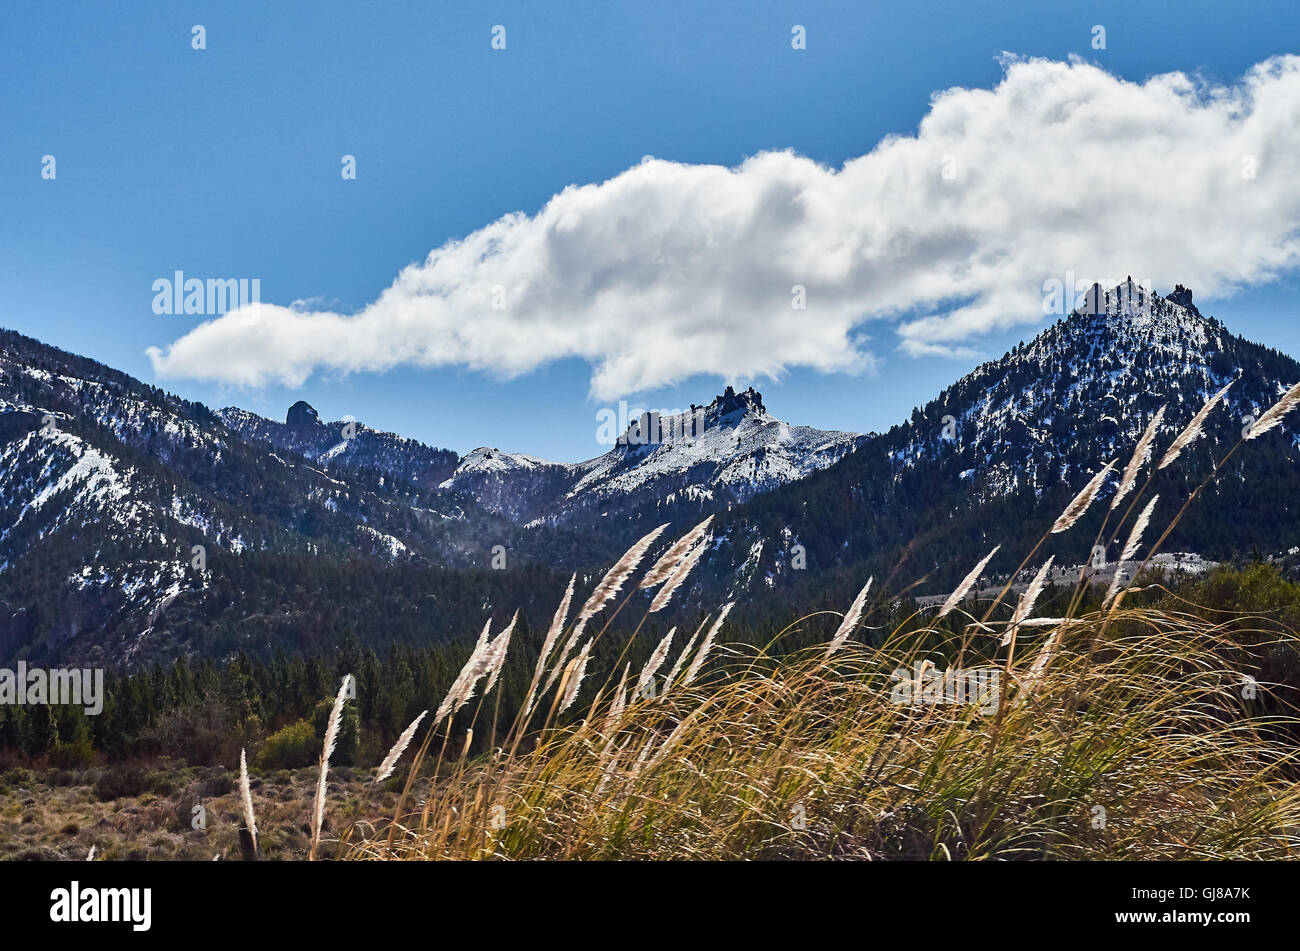 Some huge mountains in the distance with in the Enchanted Valley in San Carlos de Bariloche, Rio Negro, Argentina. - Stock Image